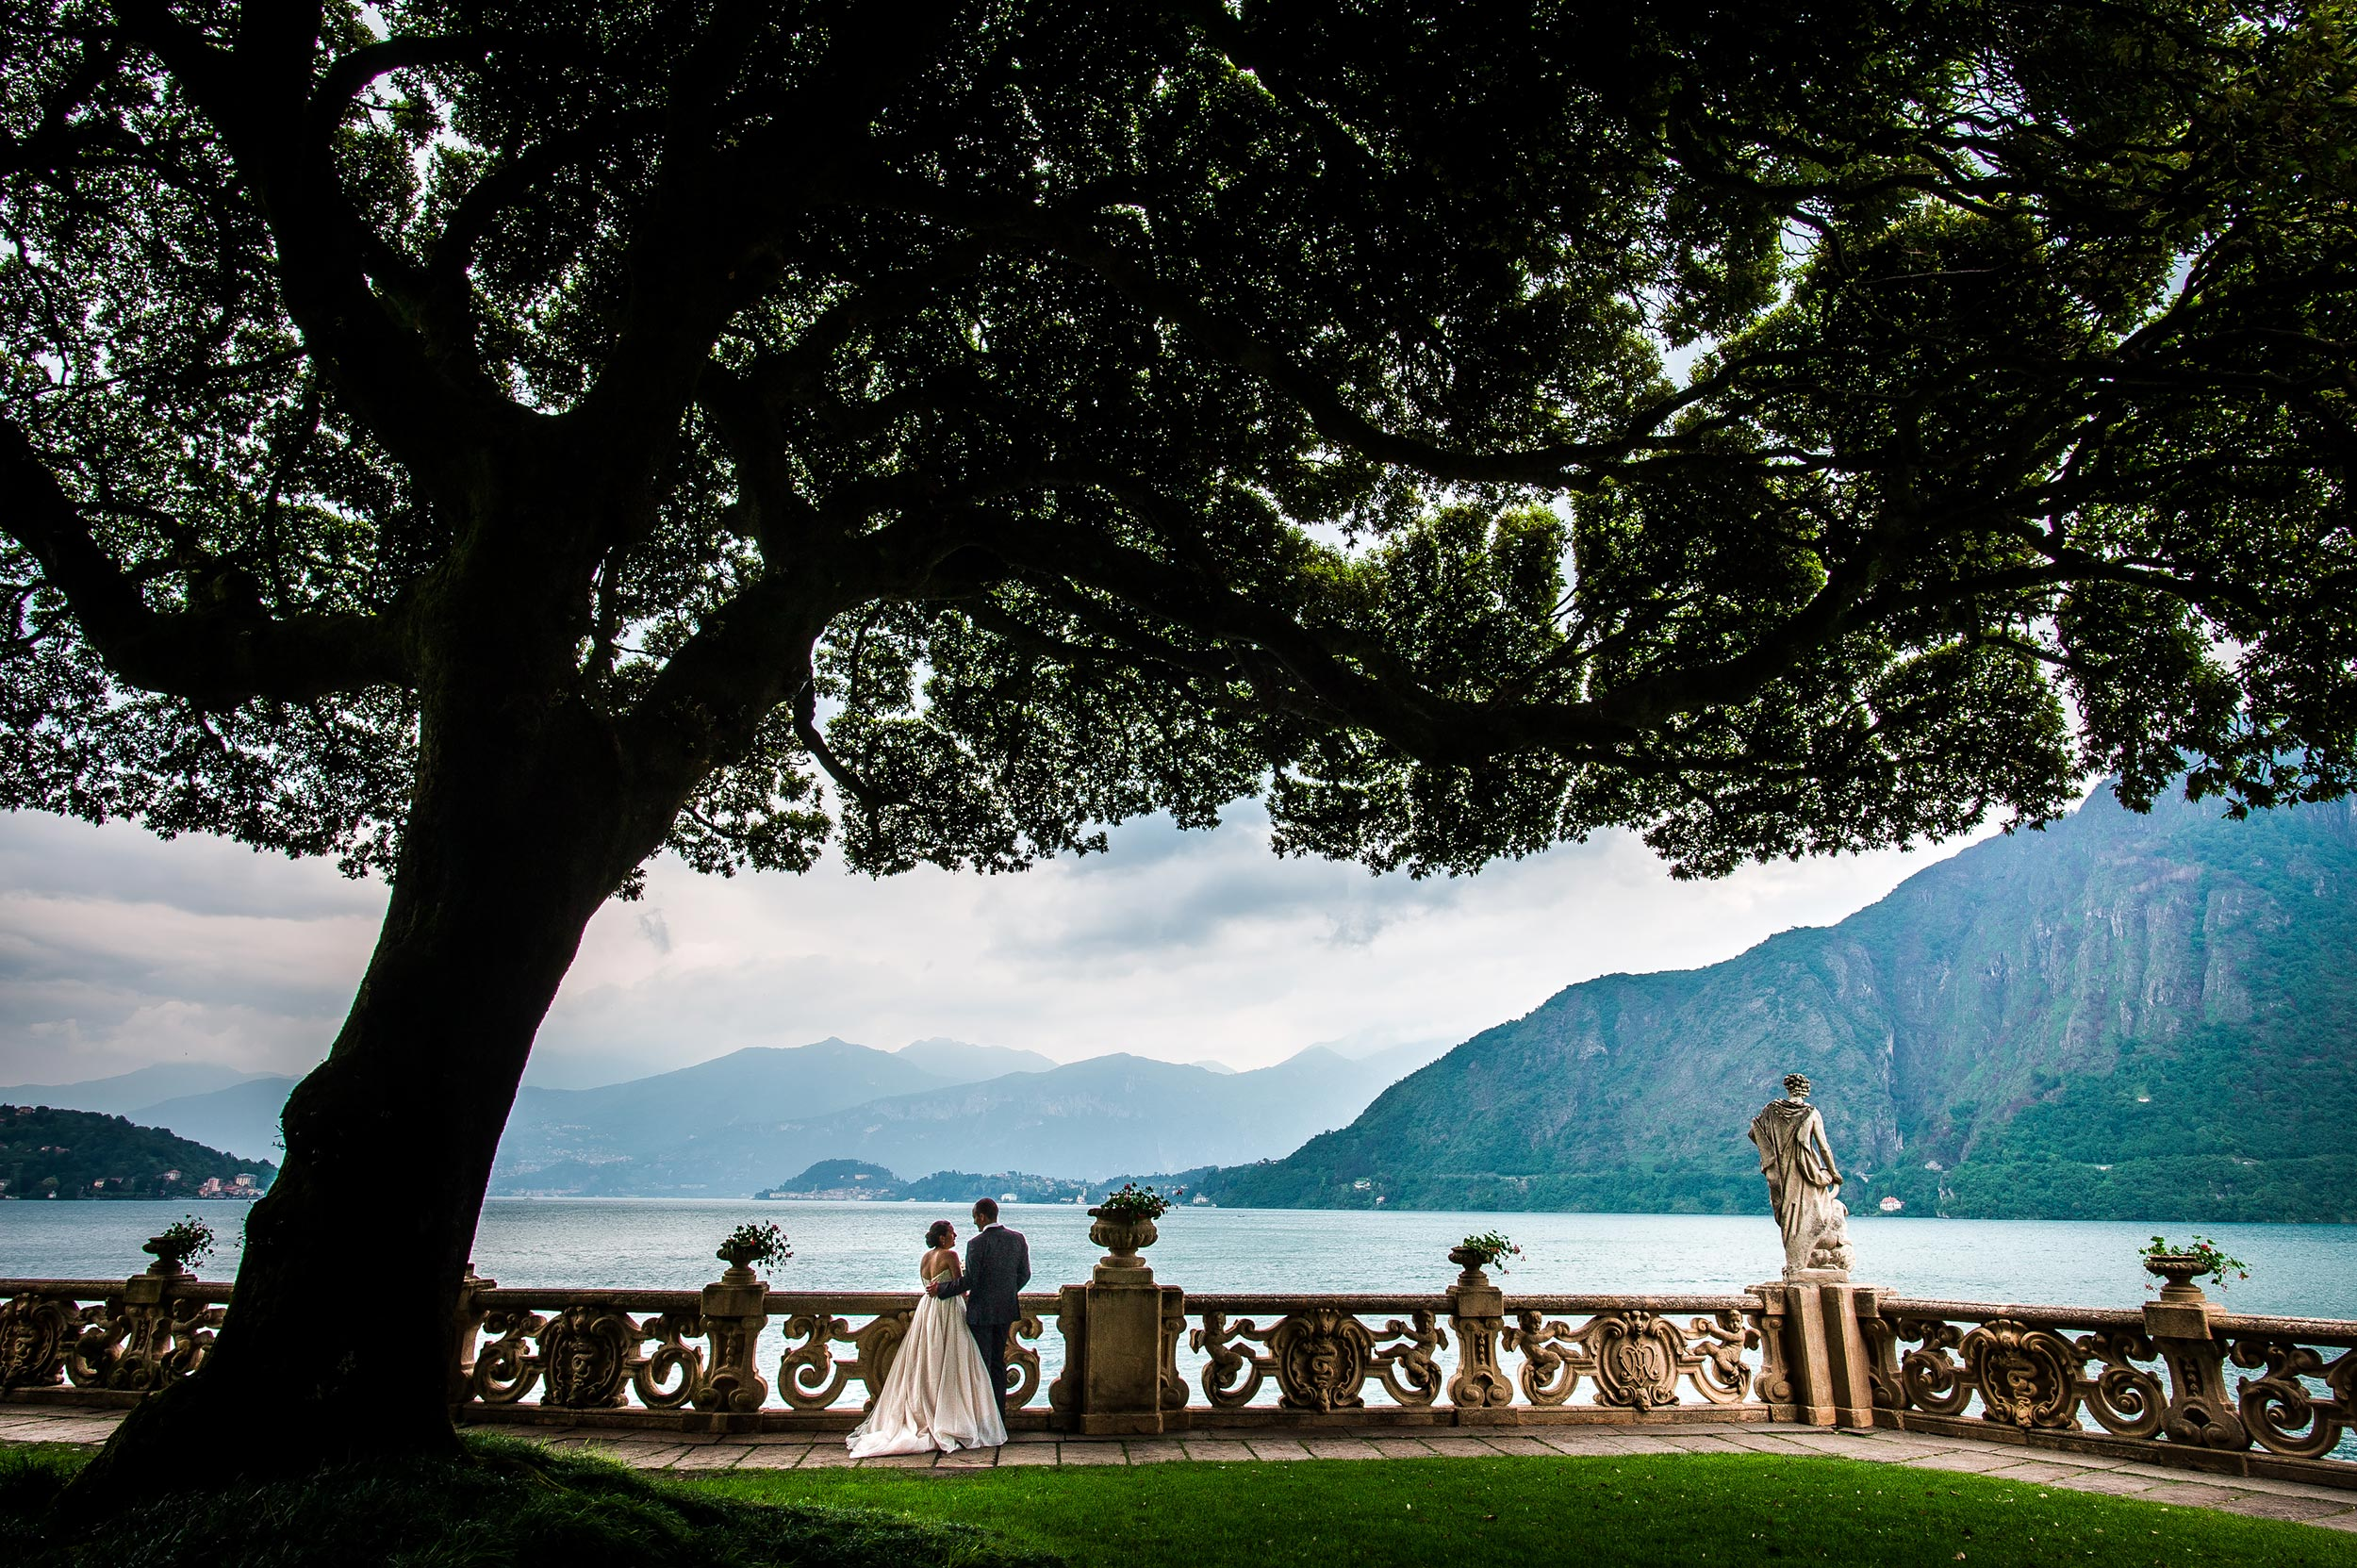 2015-Jon-Lauren-Bellagio-Lake-Como-Wedding-Photographer-Italy-Alessandro-Avenali-34.jpg